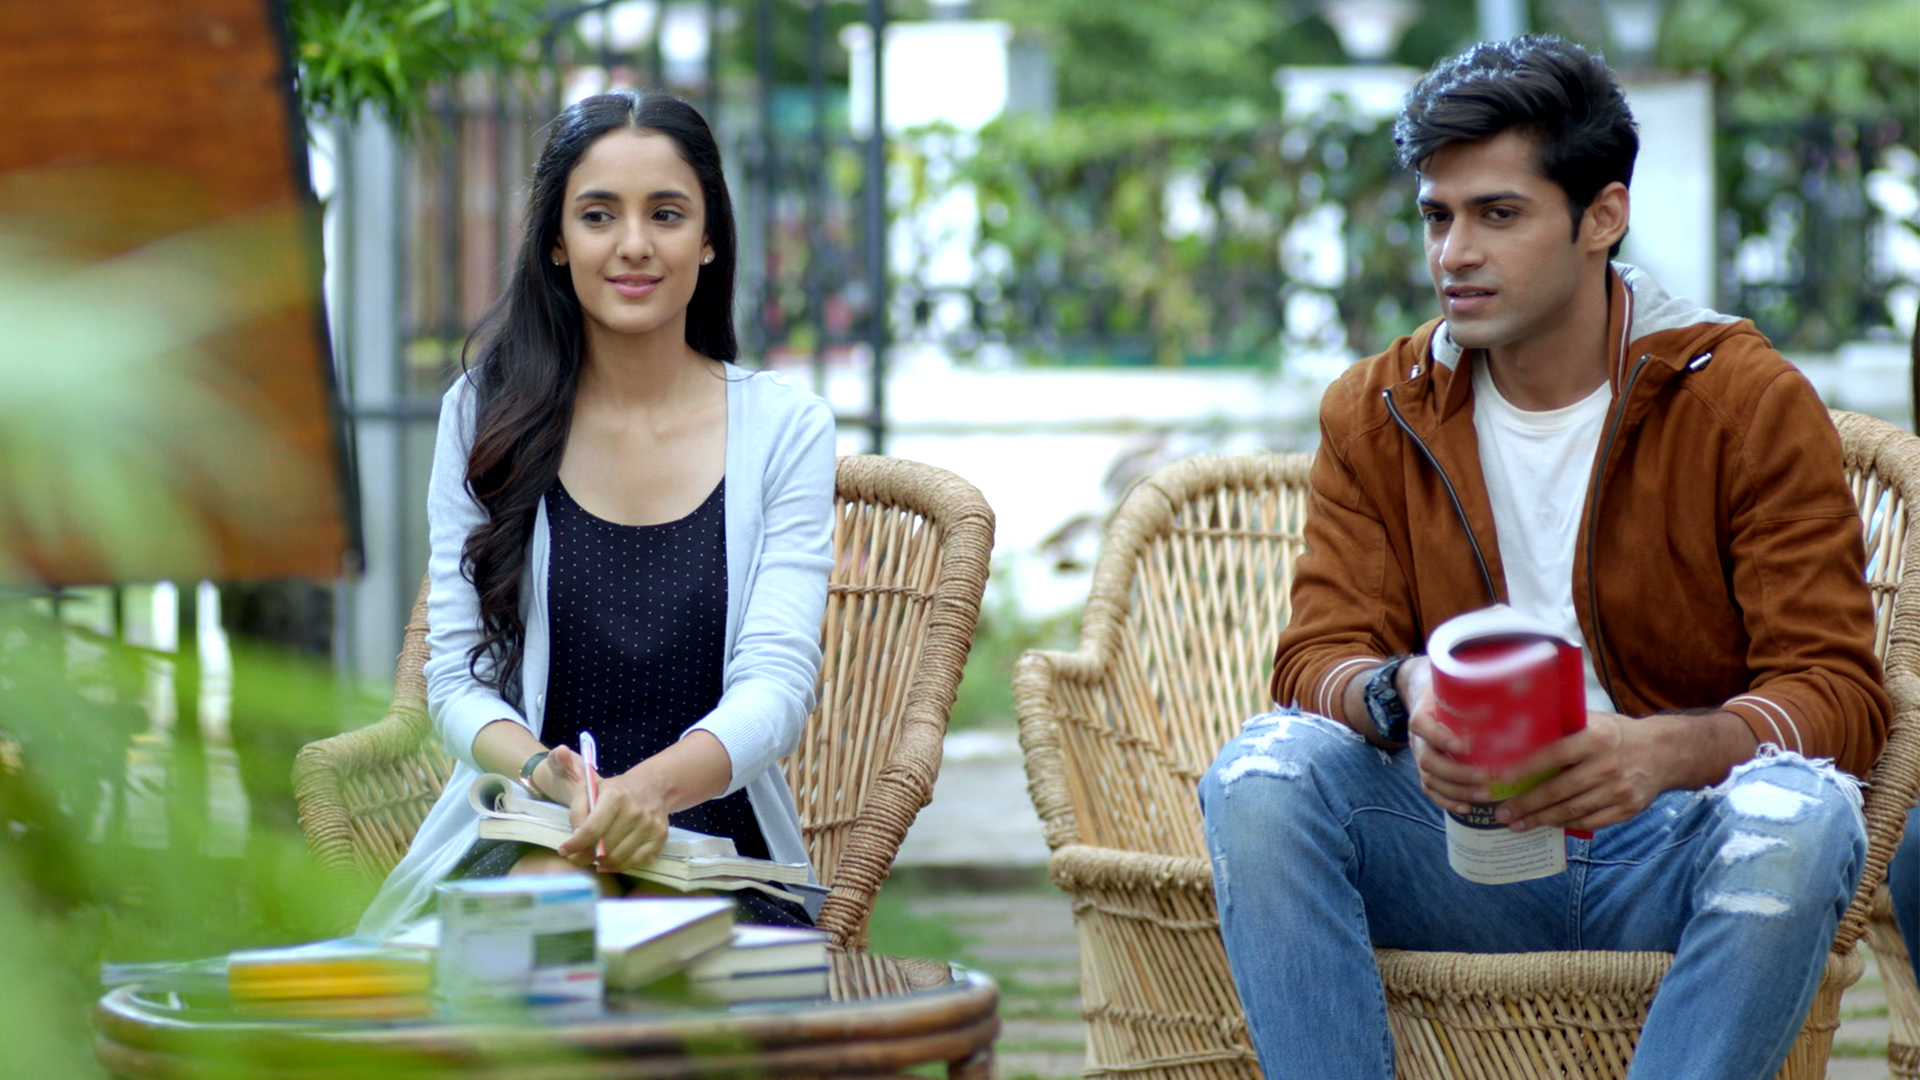 Ek Duje Ke Vaaste - Watch All Latest Episodes Online - SonyLIV